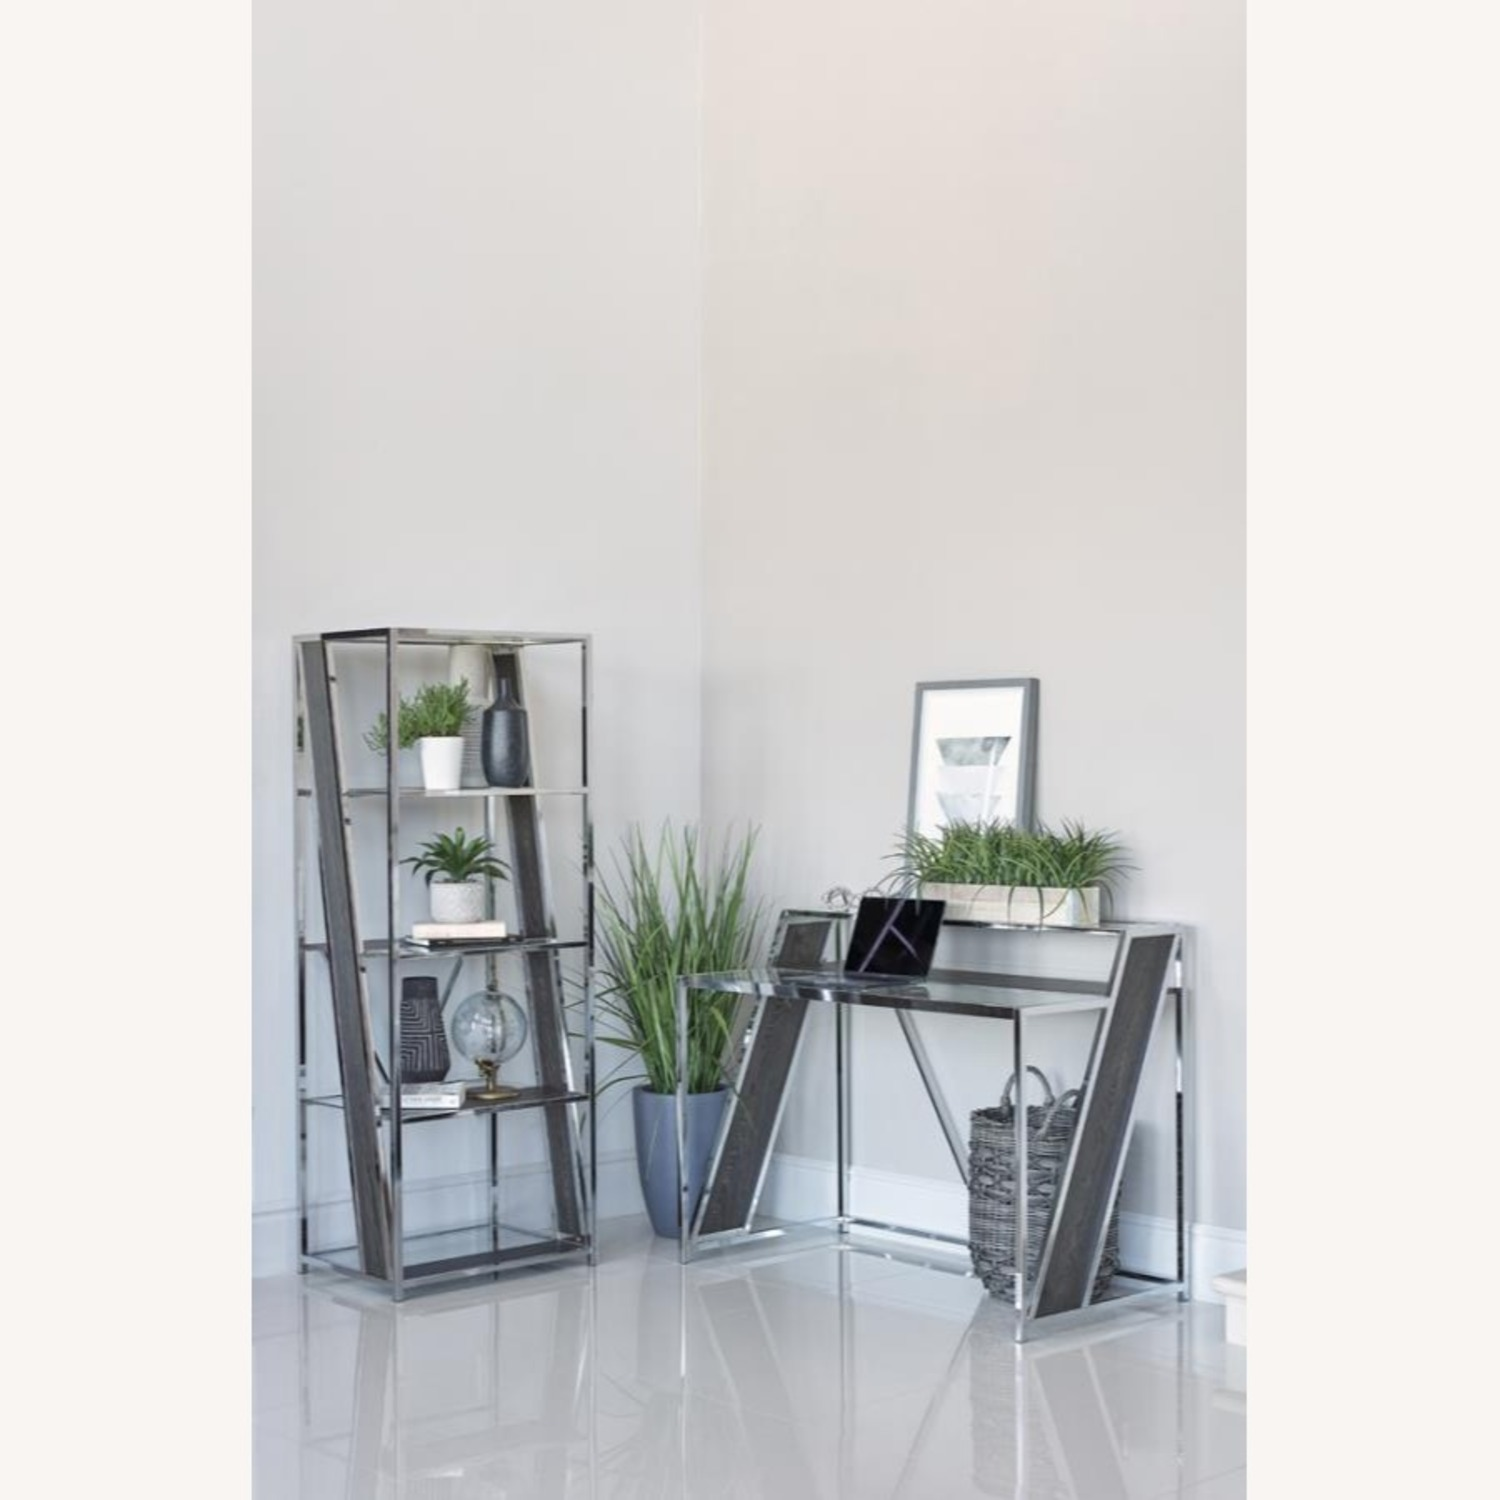 Writing Desk In Chrome W/ Clear Tempered Glass  - image-2